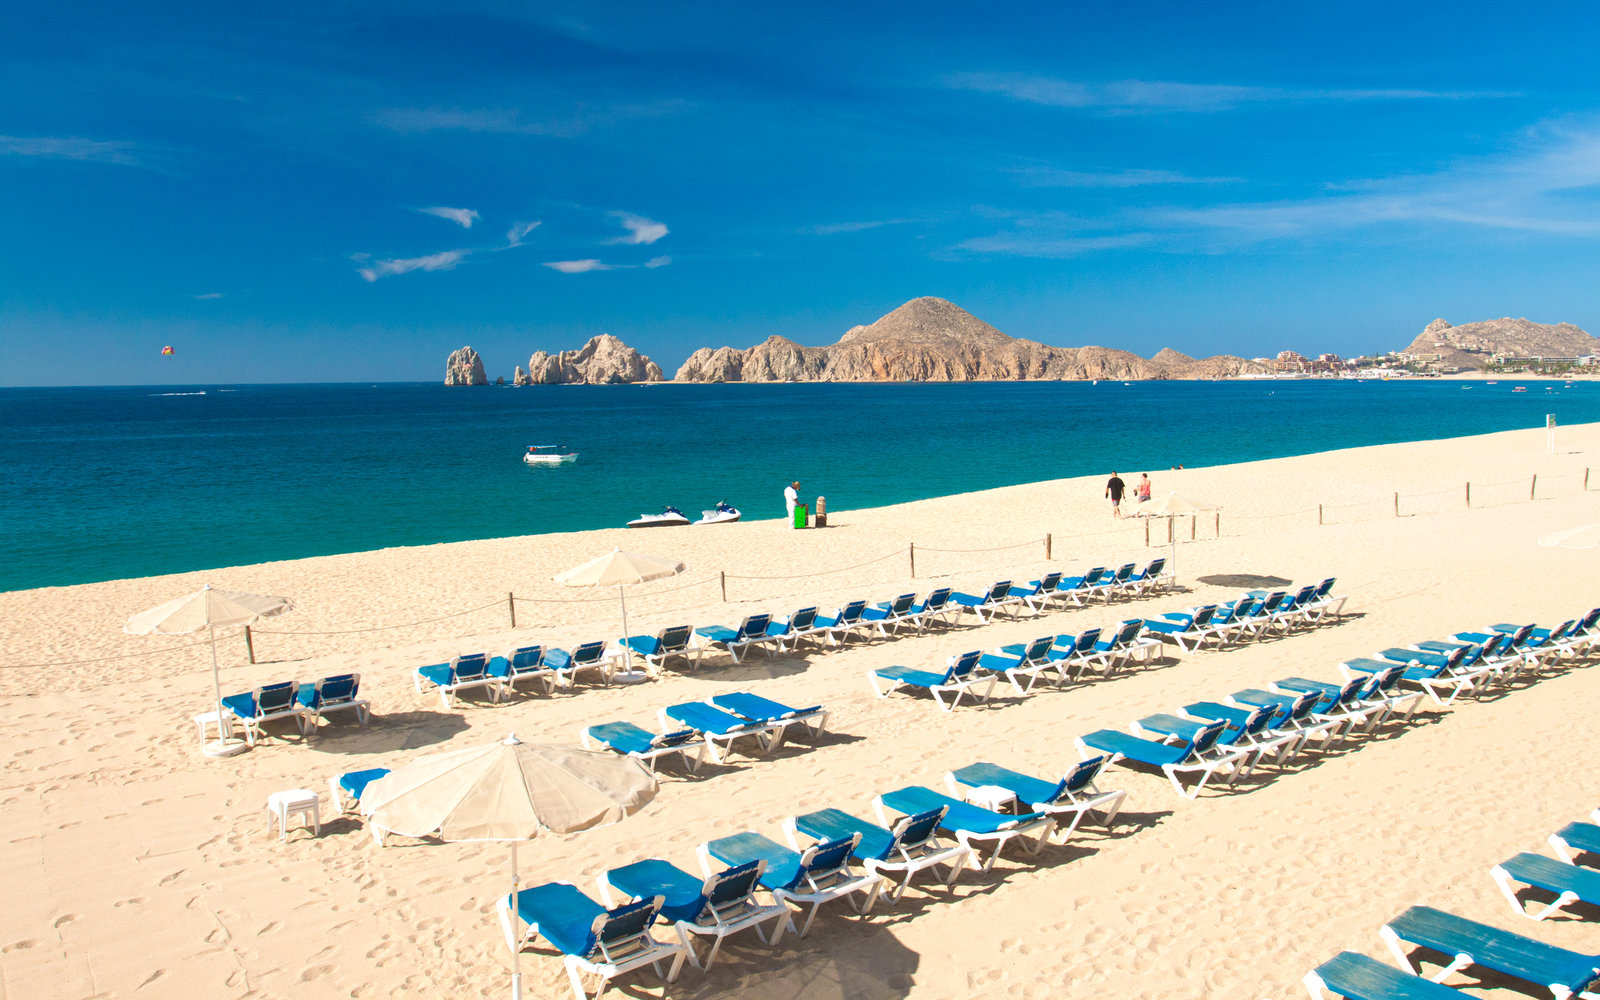 There's a New Low-Cost Way to Fly to Mexico's Beaches This Winter